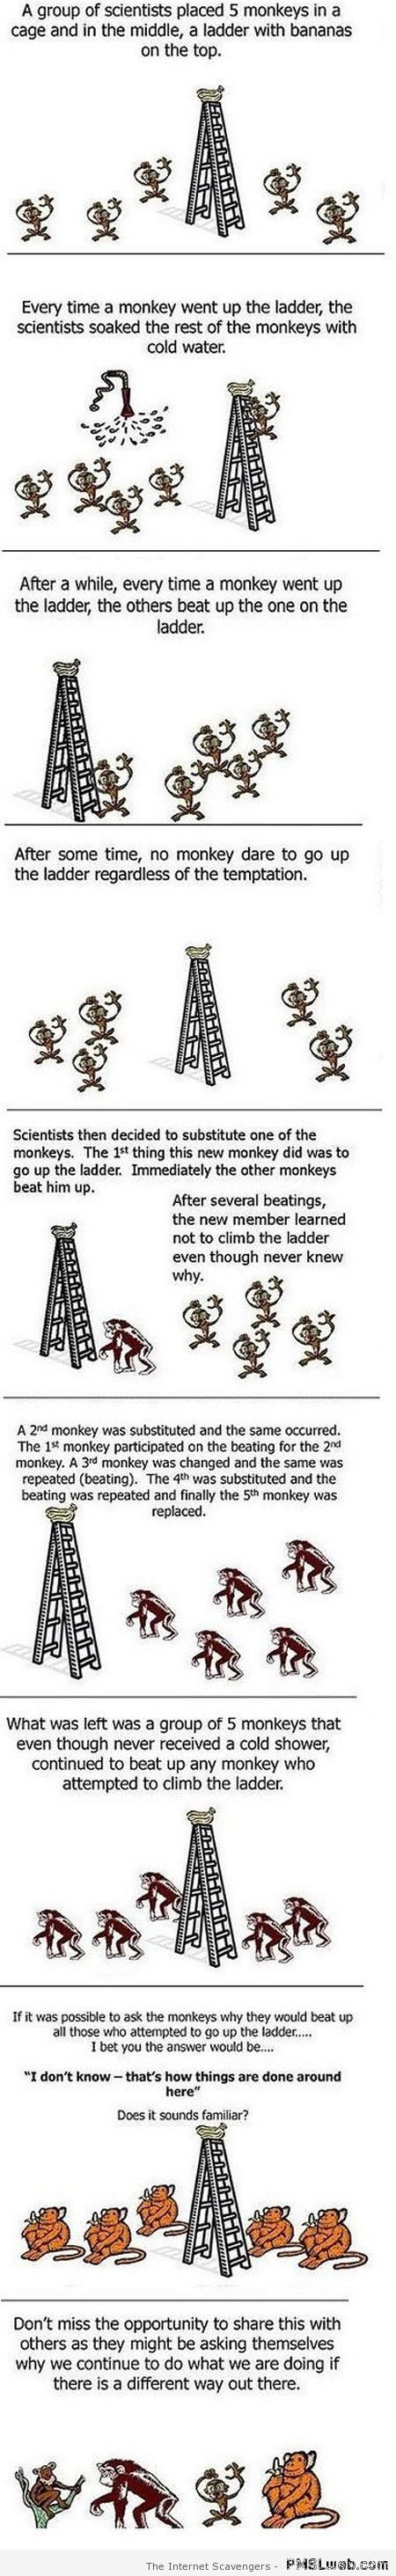 Funny and true monkey logic at PMSLweb.com